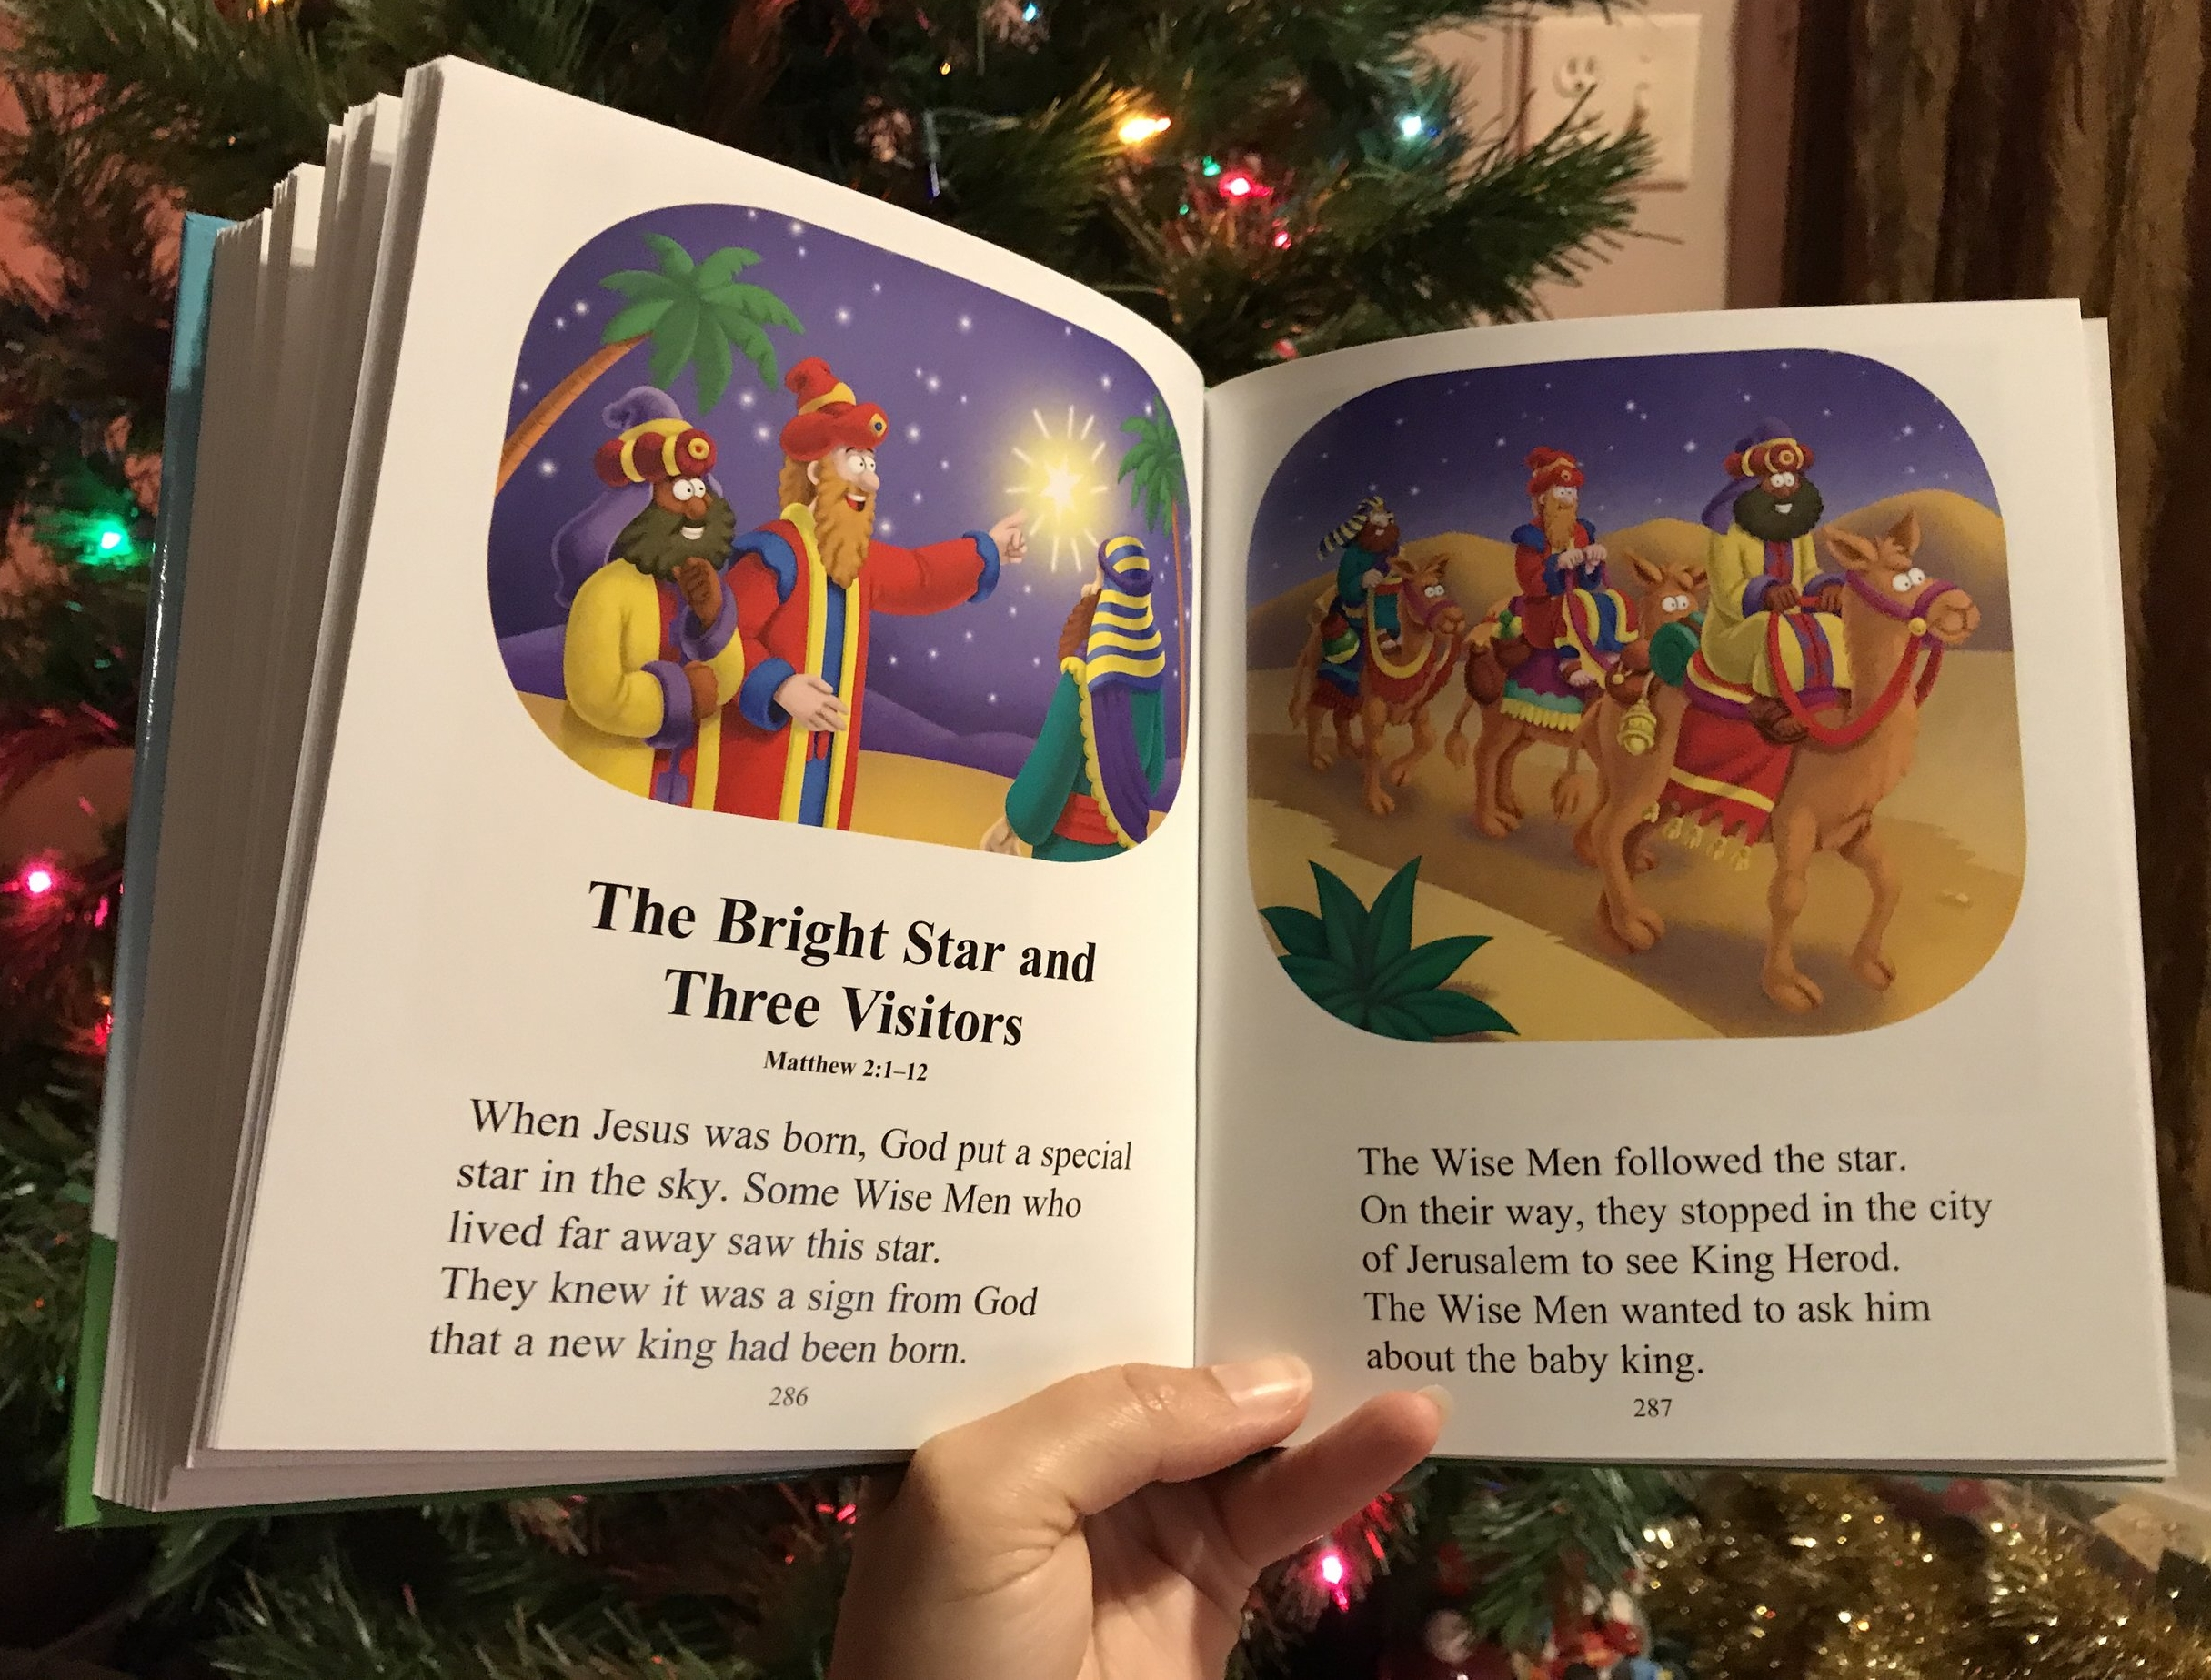 A snap of my favorite story. Side note: also my favorite Christmas carol. Have you ever heard all the verses? So fun to sing in a minor key!